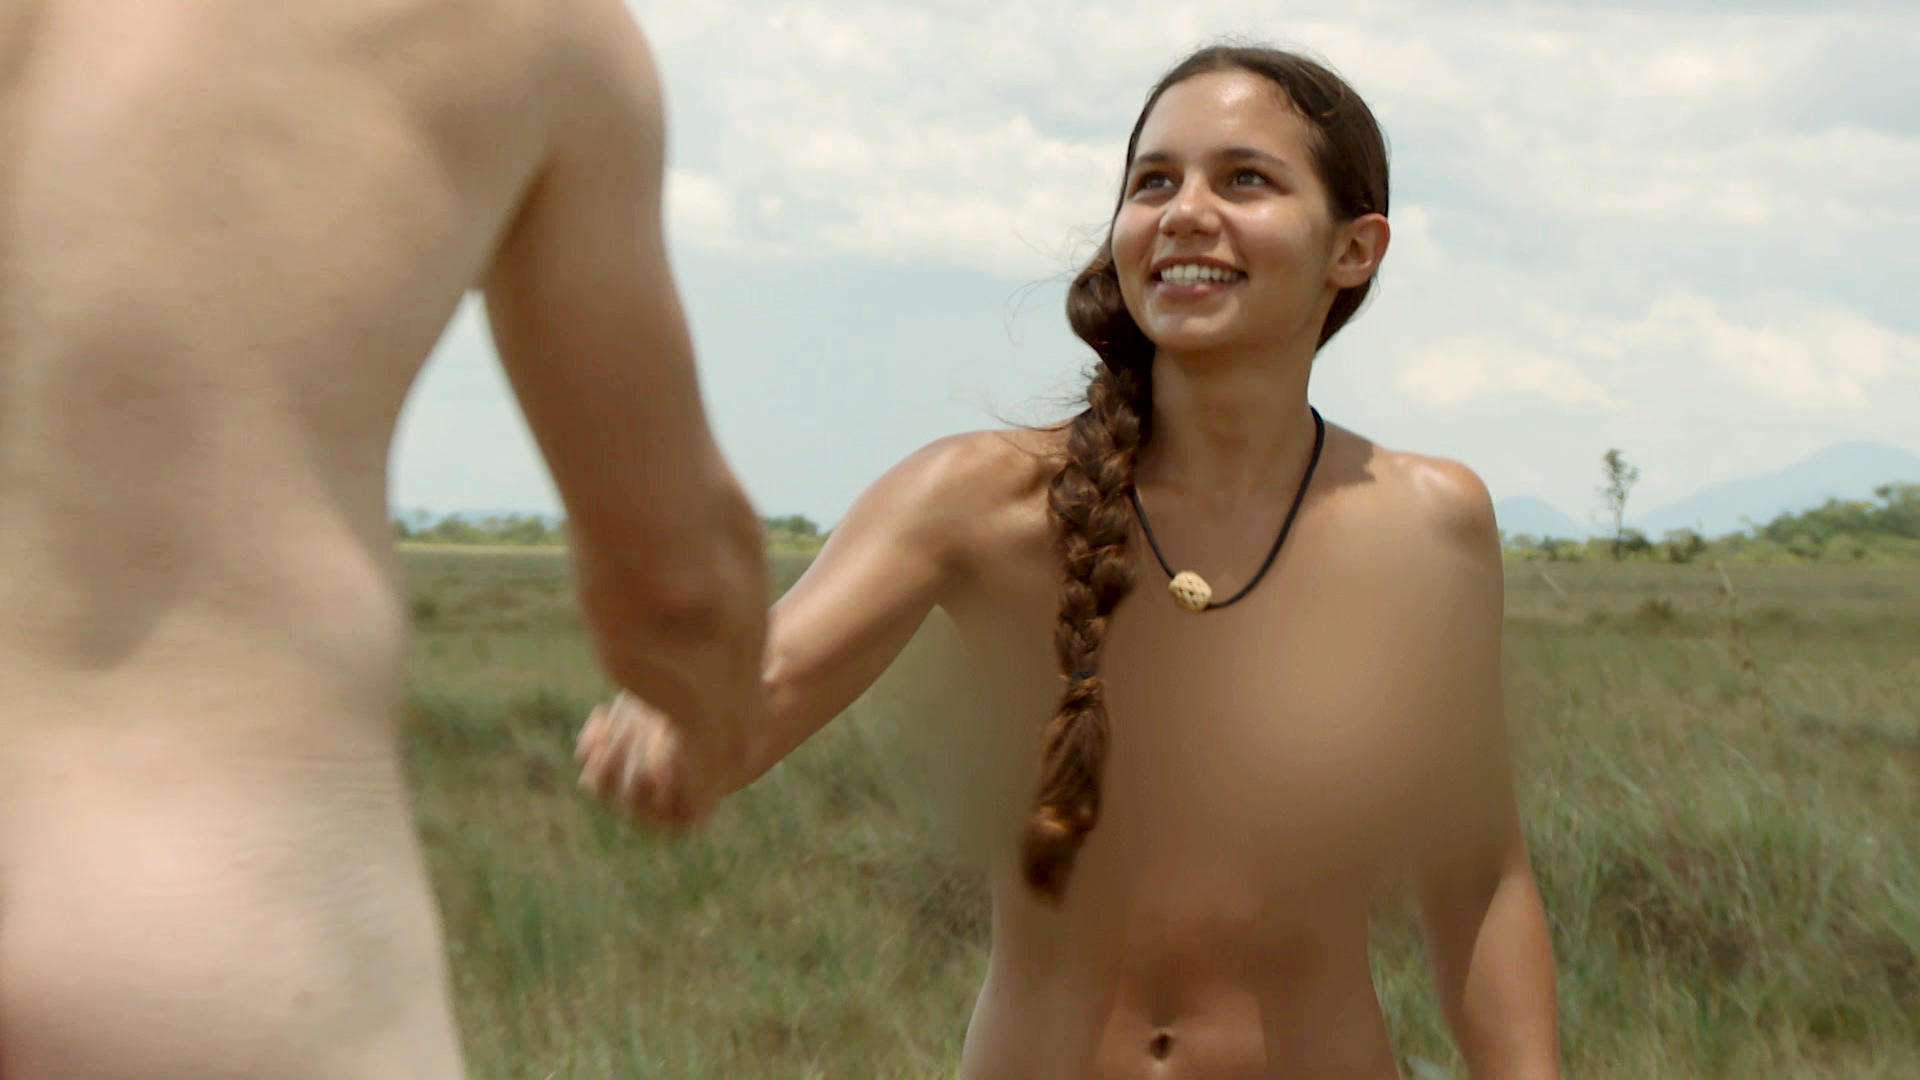 naked and afraid nude pics